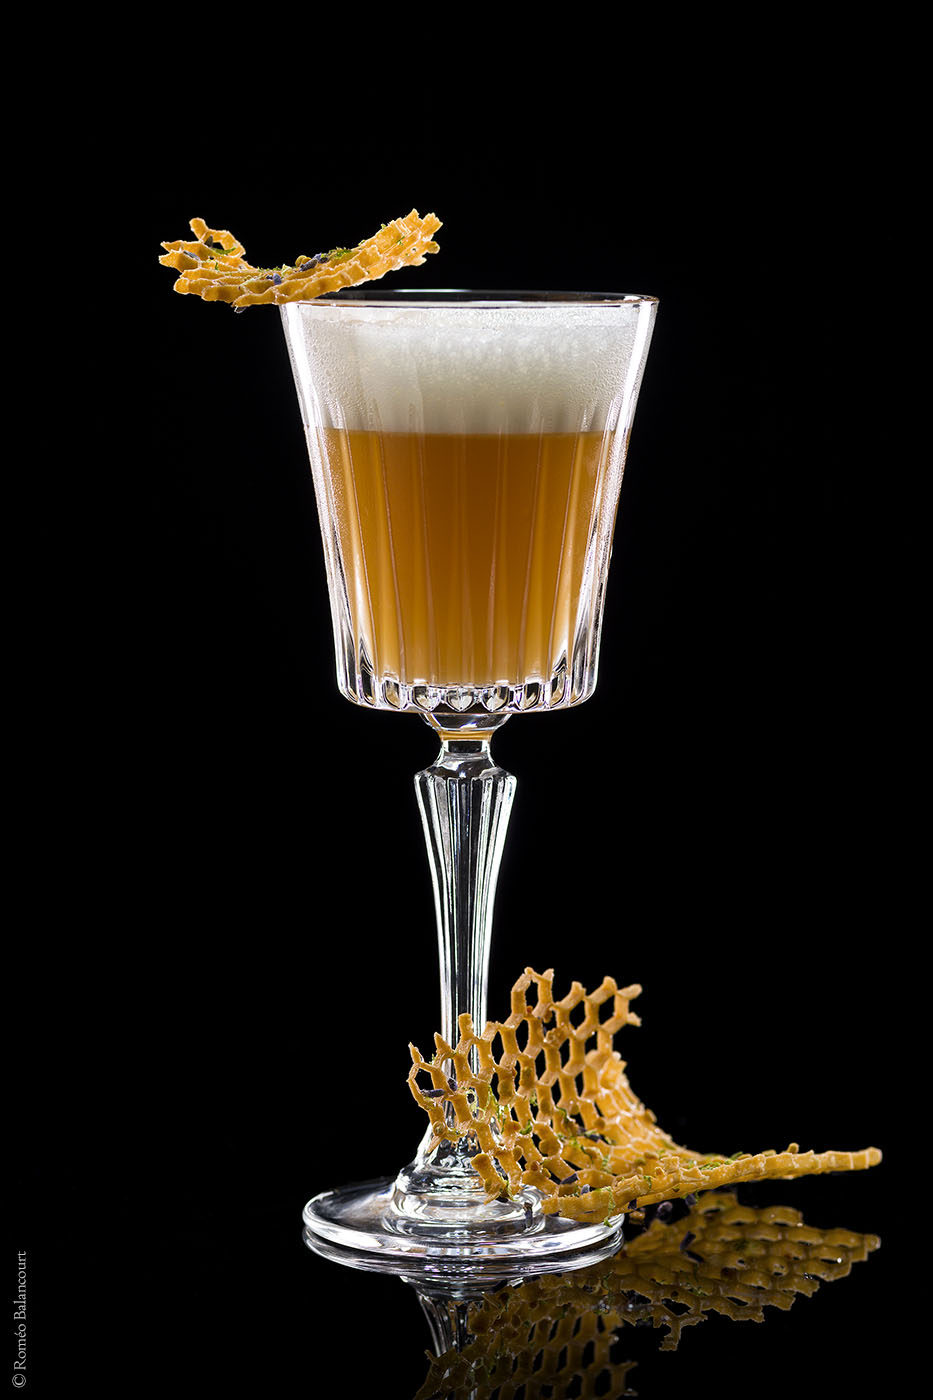 cocktail-bumble-bee-le-bar-botaniste-shangri-la-hotel-paris-rome